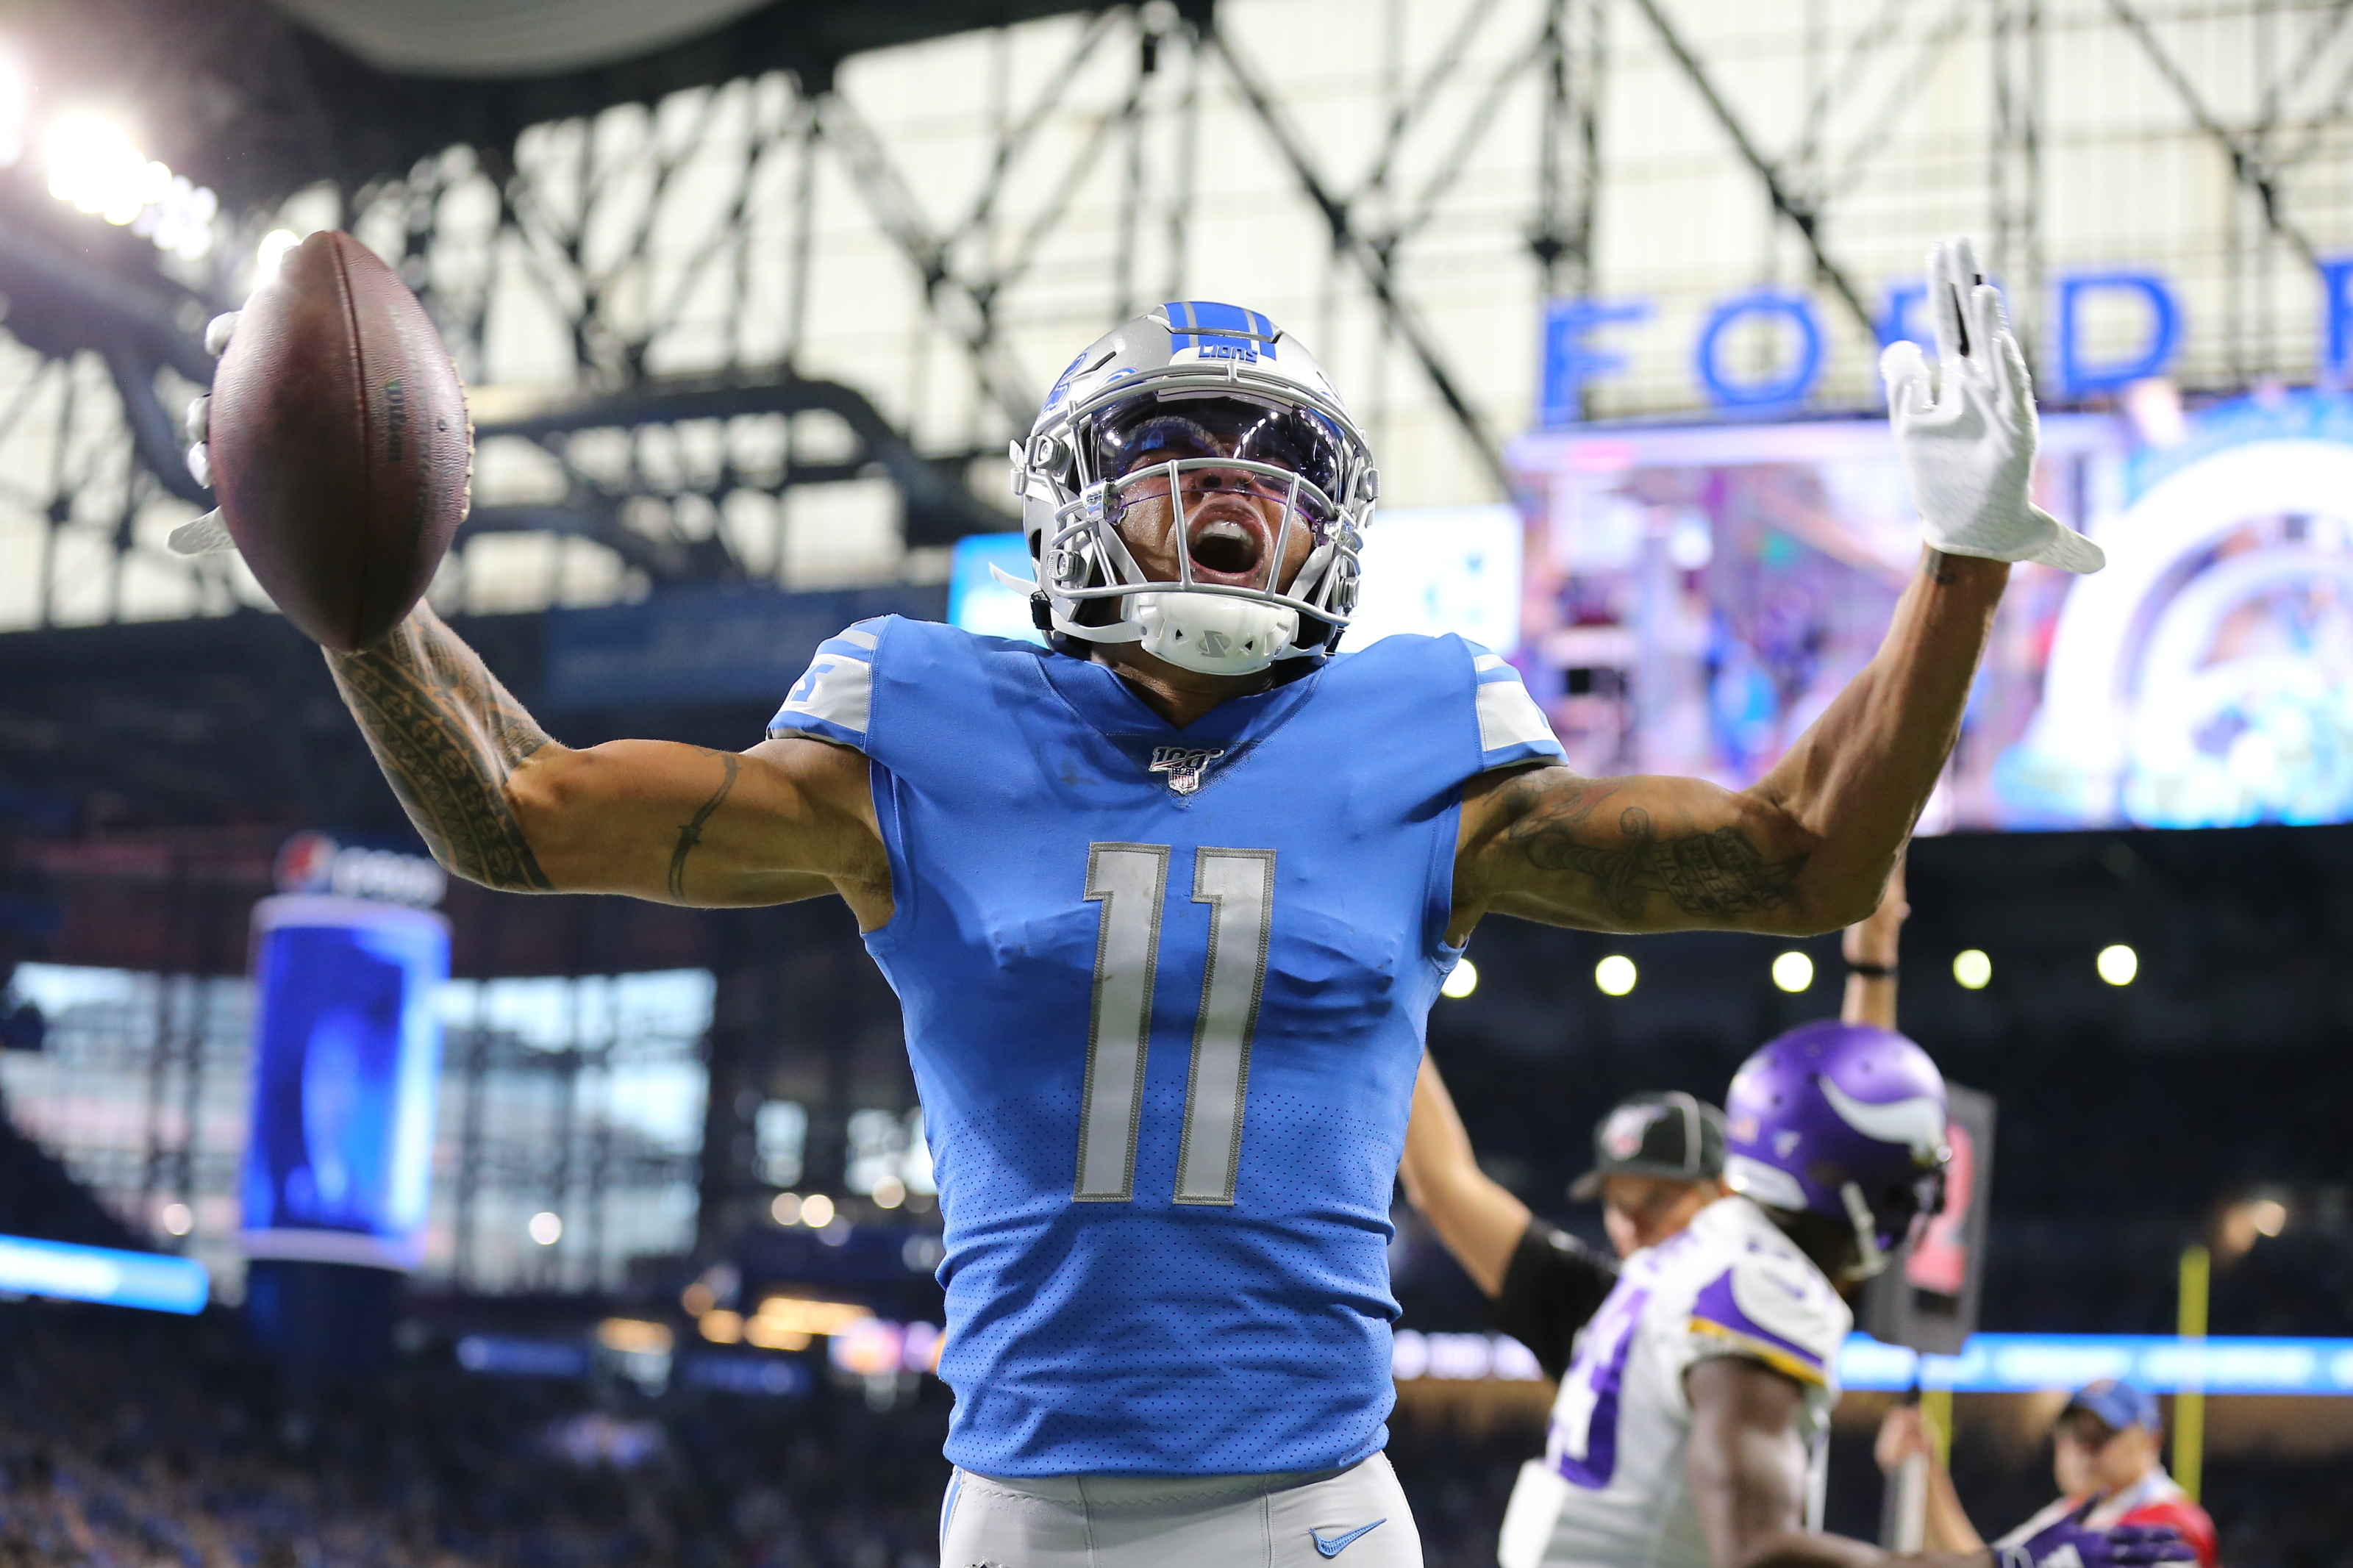 Lions vs. Bears: Marvin Jones set to have a big first game